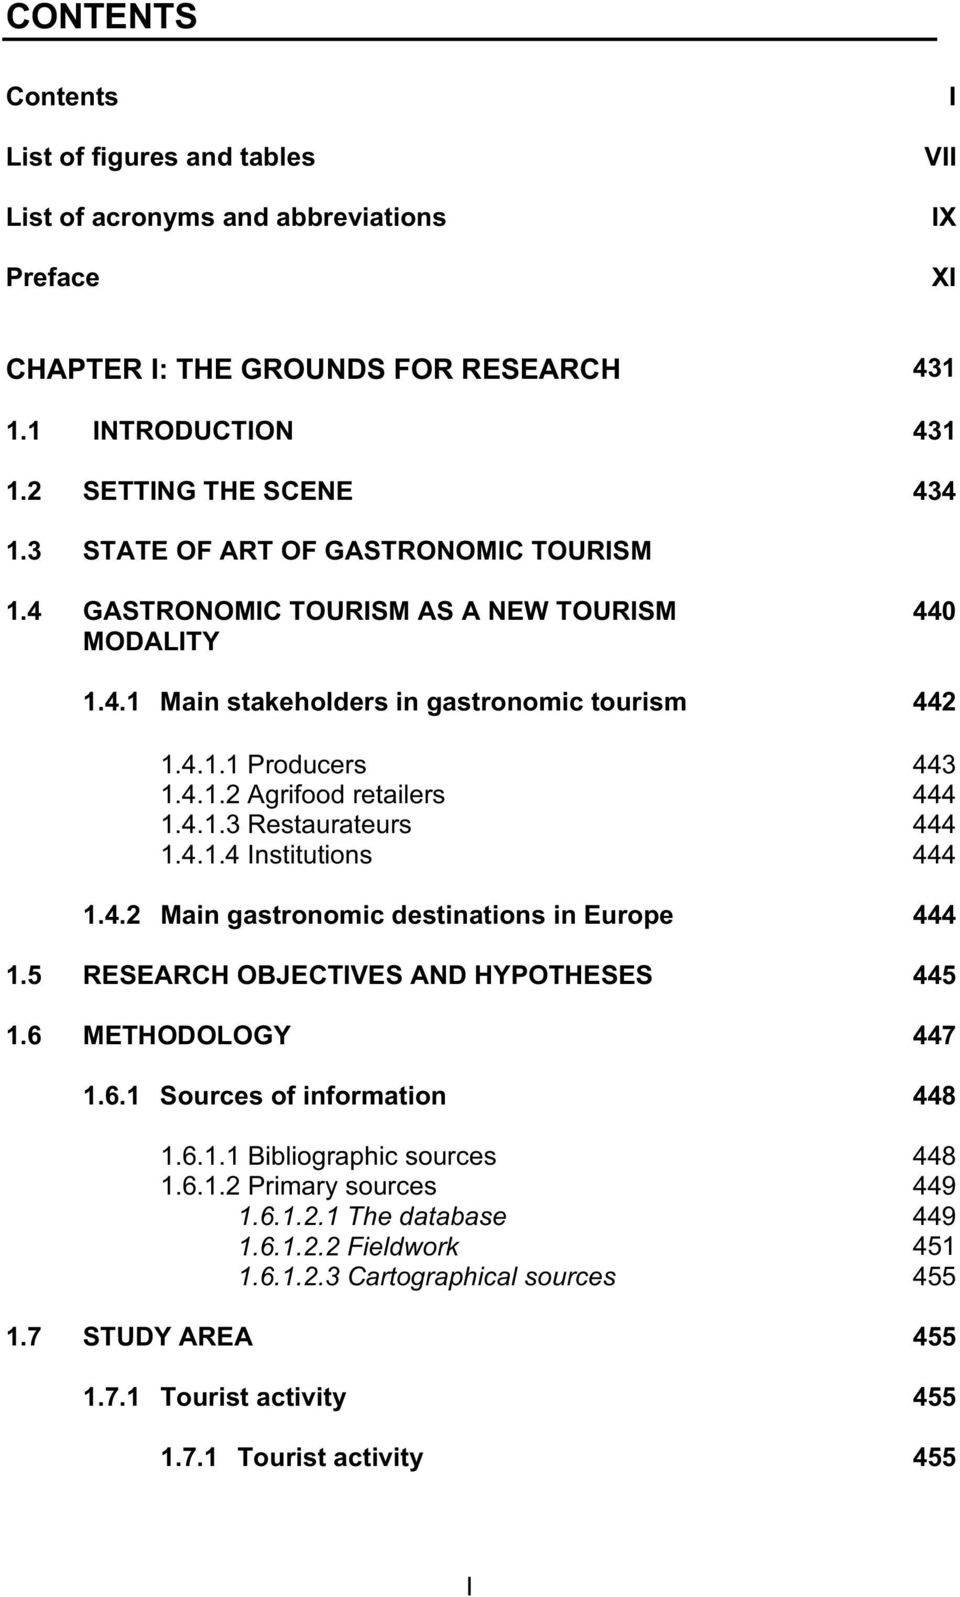 4.1.4 Institutions 444 1.4.2 Main gastronomic destinations in Europe 444 1.5 RESEARCH OBJECTIVES AND HYPOTHESES 445 1.6 METHODOLOGY 447 1.6.1 Sources of information 448 1.6.1.1 Bibliographic sources 448 1.